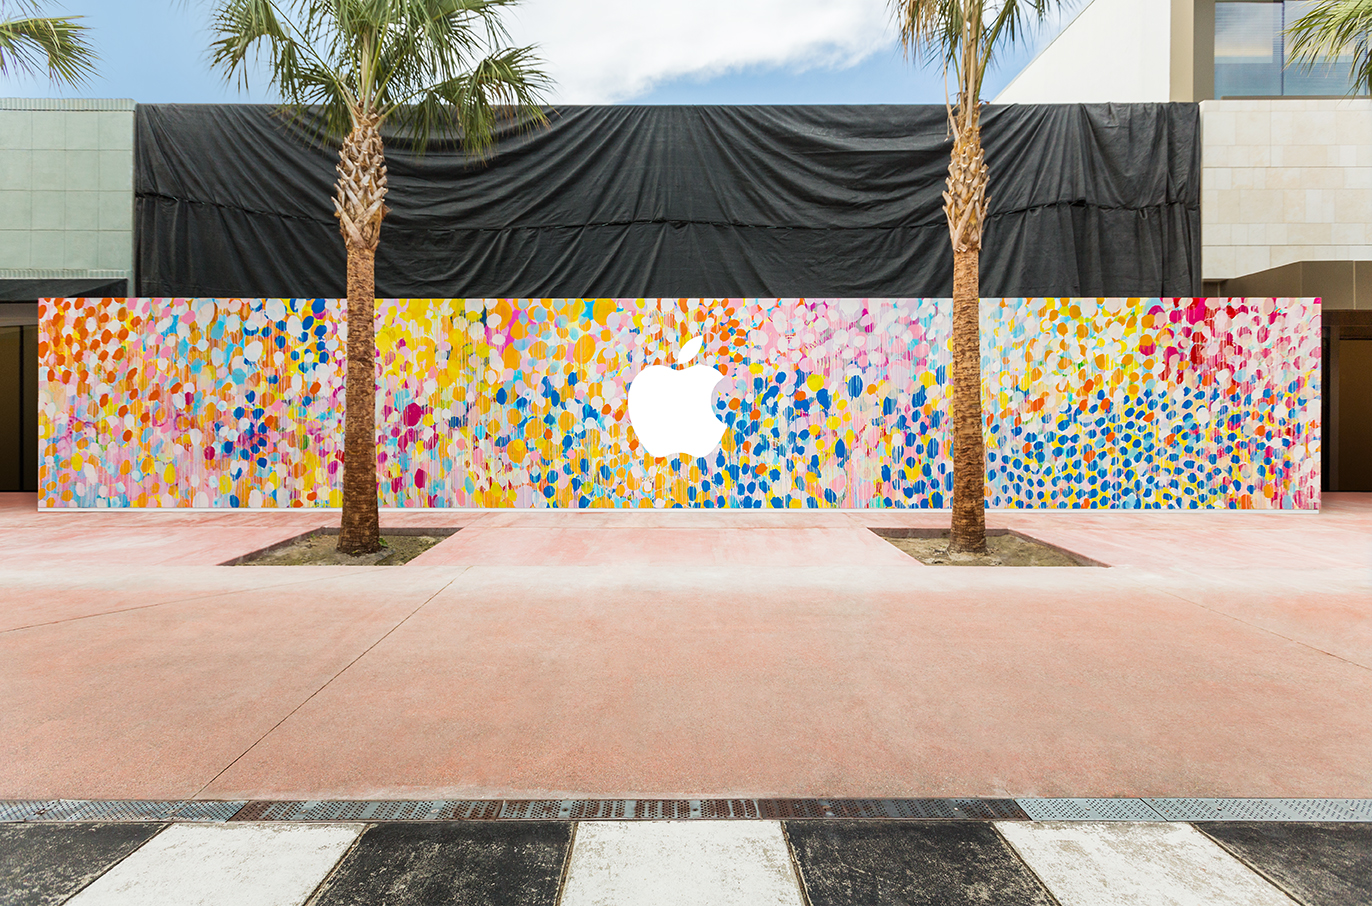 Apple Store Lincoln Road in Miami Beach